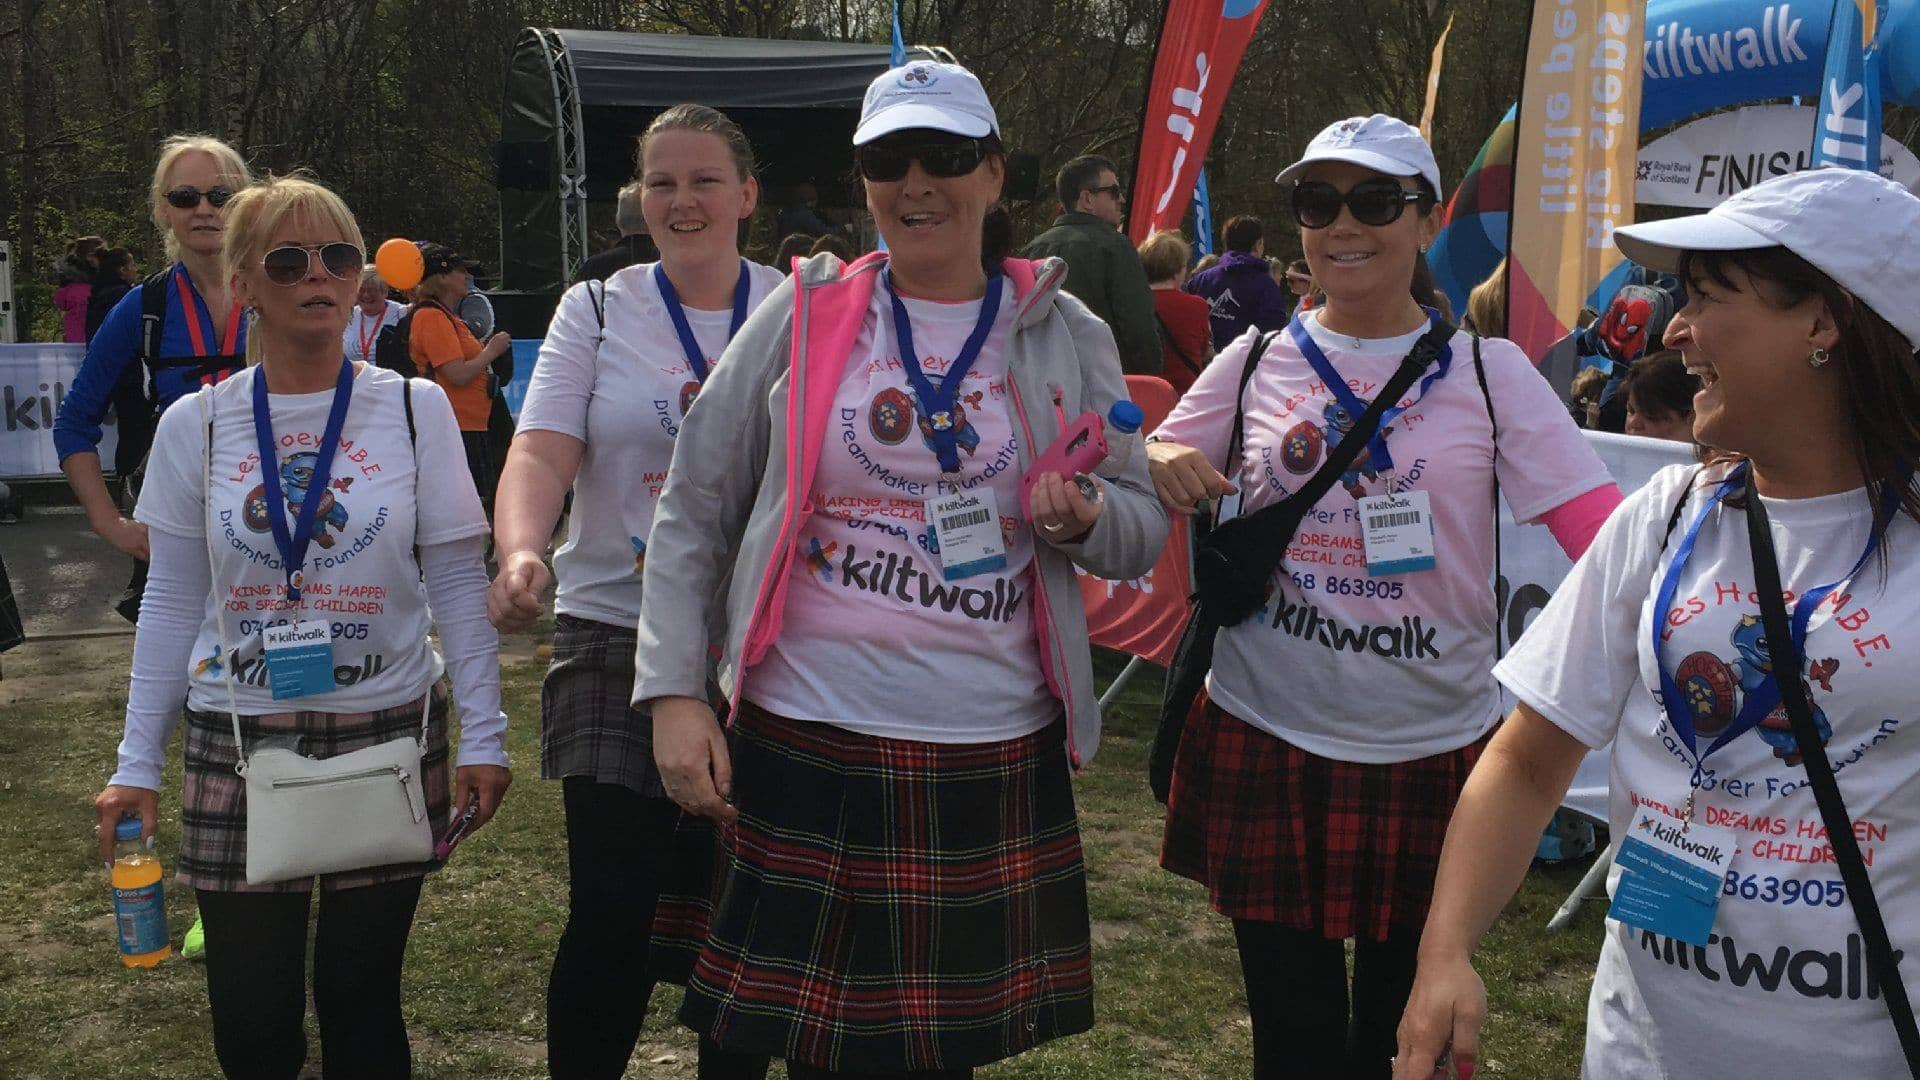 The Kiltwalk 2016